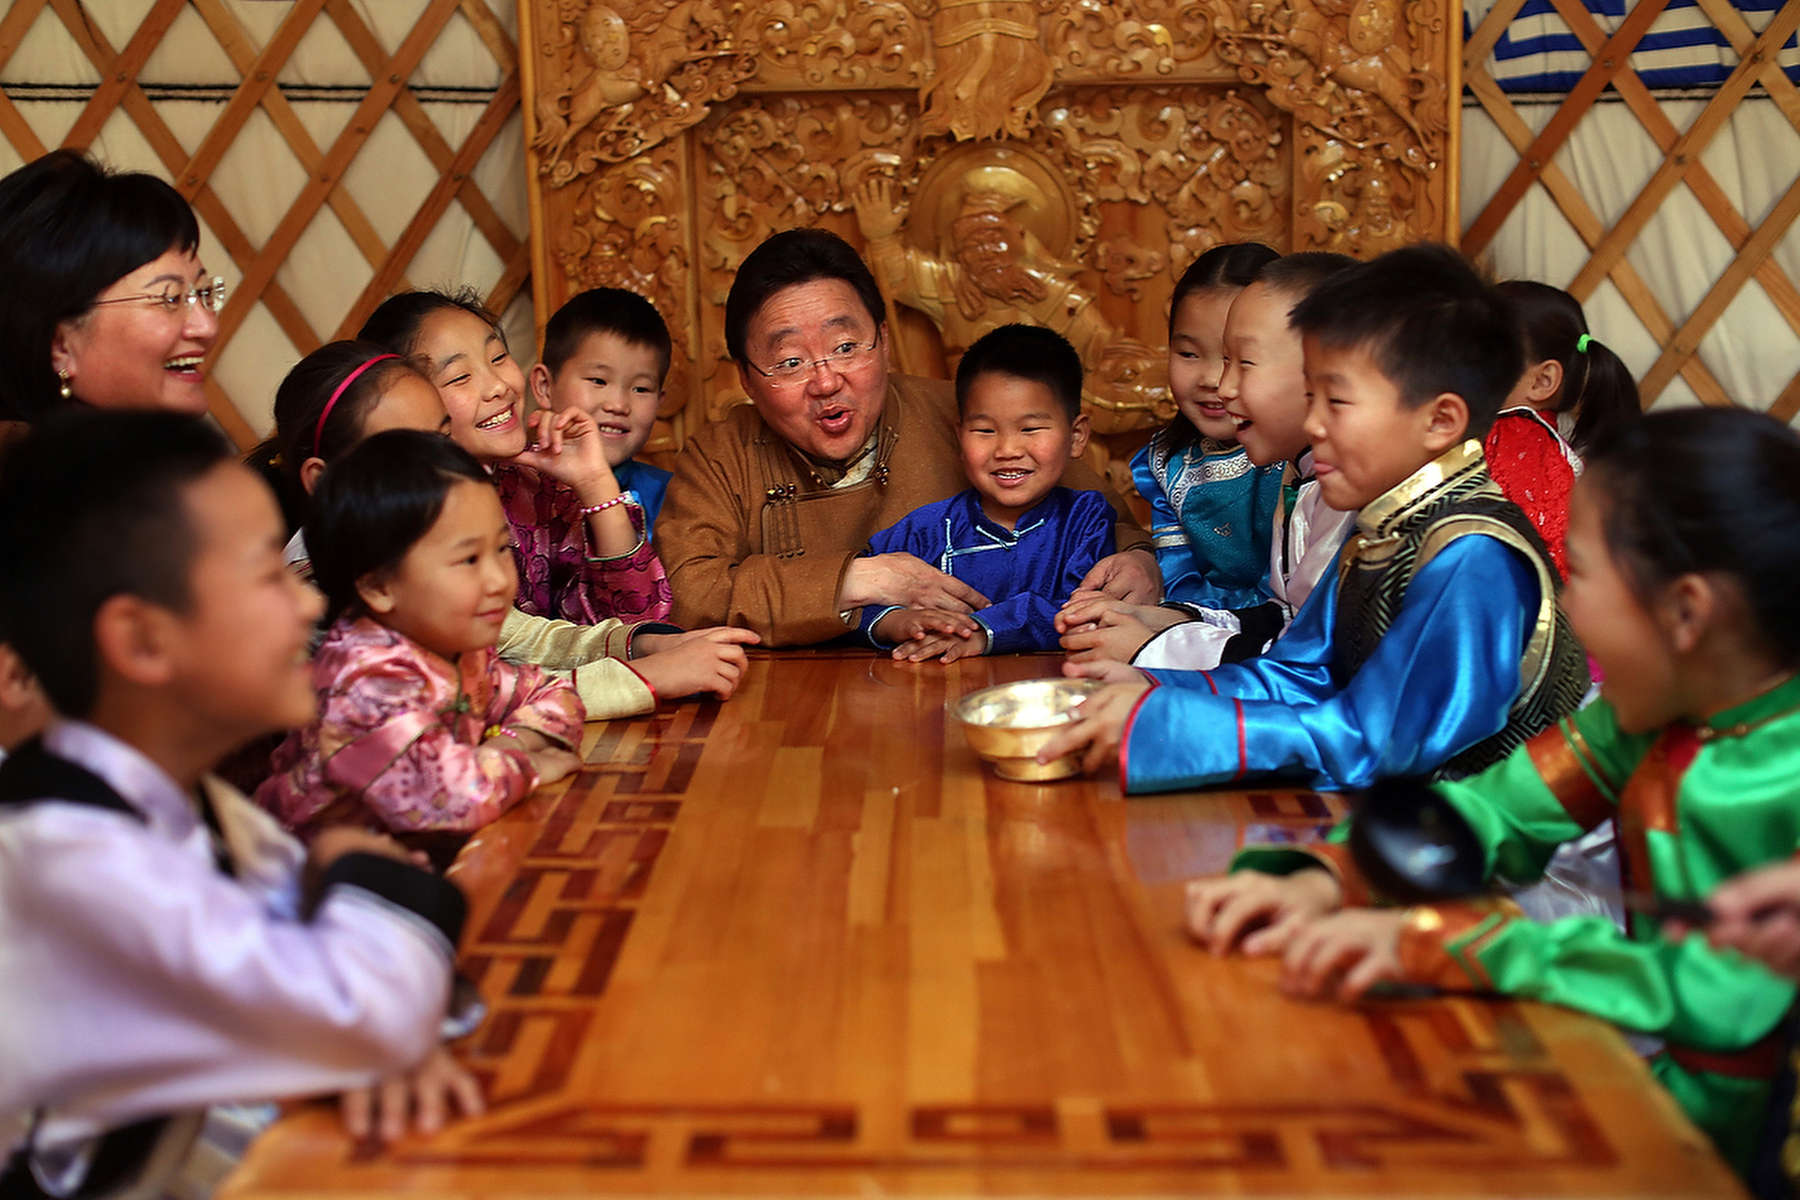 ULAANBATAAR, MONGOLIA - OCTOBER 26: President Tsakhiagiin Elbegdorj and first lady, Bolormaa Khajidsuren (L) share laughs with their foster children while drinking milk tea inside a Ger at the presidential residence October 26, 2012 in Ulaanbataar, Mongolia. President Tsakhiagiin Elbegdorj was elected  on May 25, 2009, he had previously served two terms as Prime Minister and held the positions of Deputy Speaker and Majority Leader in Parliament. The first lady, Bolormaa Khajidsuren is a mother of 4 children, and the extended Presidential family includes 20 foster children coming from a variety of government children's homes. Some 100 years ago, Mongolia gained independence from Qing China, and more than 20 years ago it removed itself from the Soviet Bloc. Since then, the country has been undergoing massive social, economic and political changes. The Oyu Tolgoi copper and gold mine is Mongolia's biggest foreign investment project to date adding an estimated 35% value to the country's GDP. Mongolia is a land of amazing contrasts and is the most sparsely populated country on earth with fewer than 3 million people. (Photo by Paula Bronstein/Getty Images)